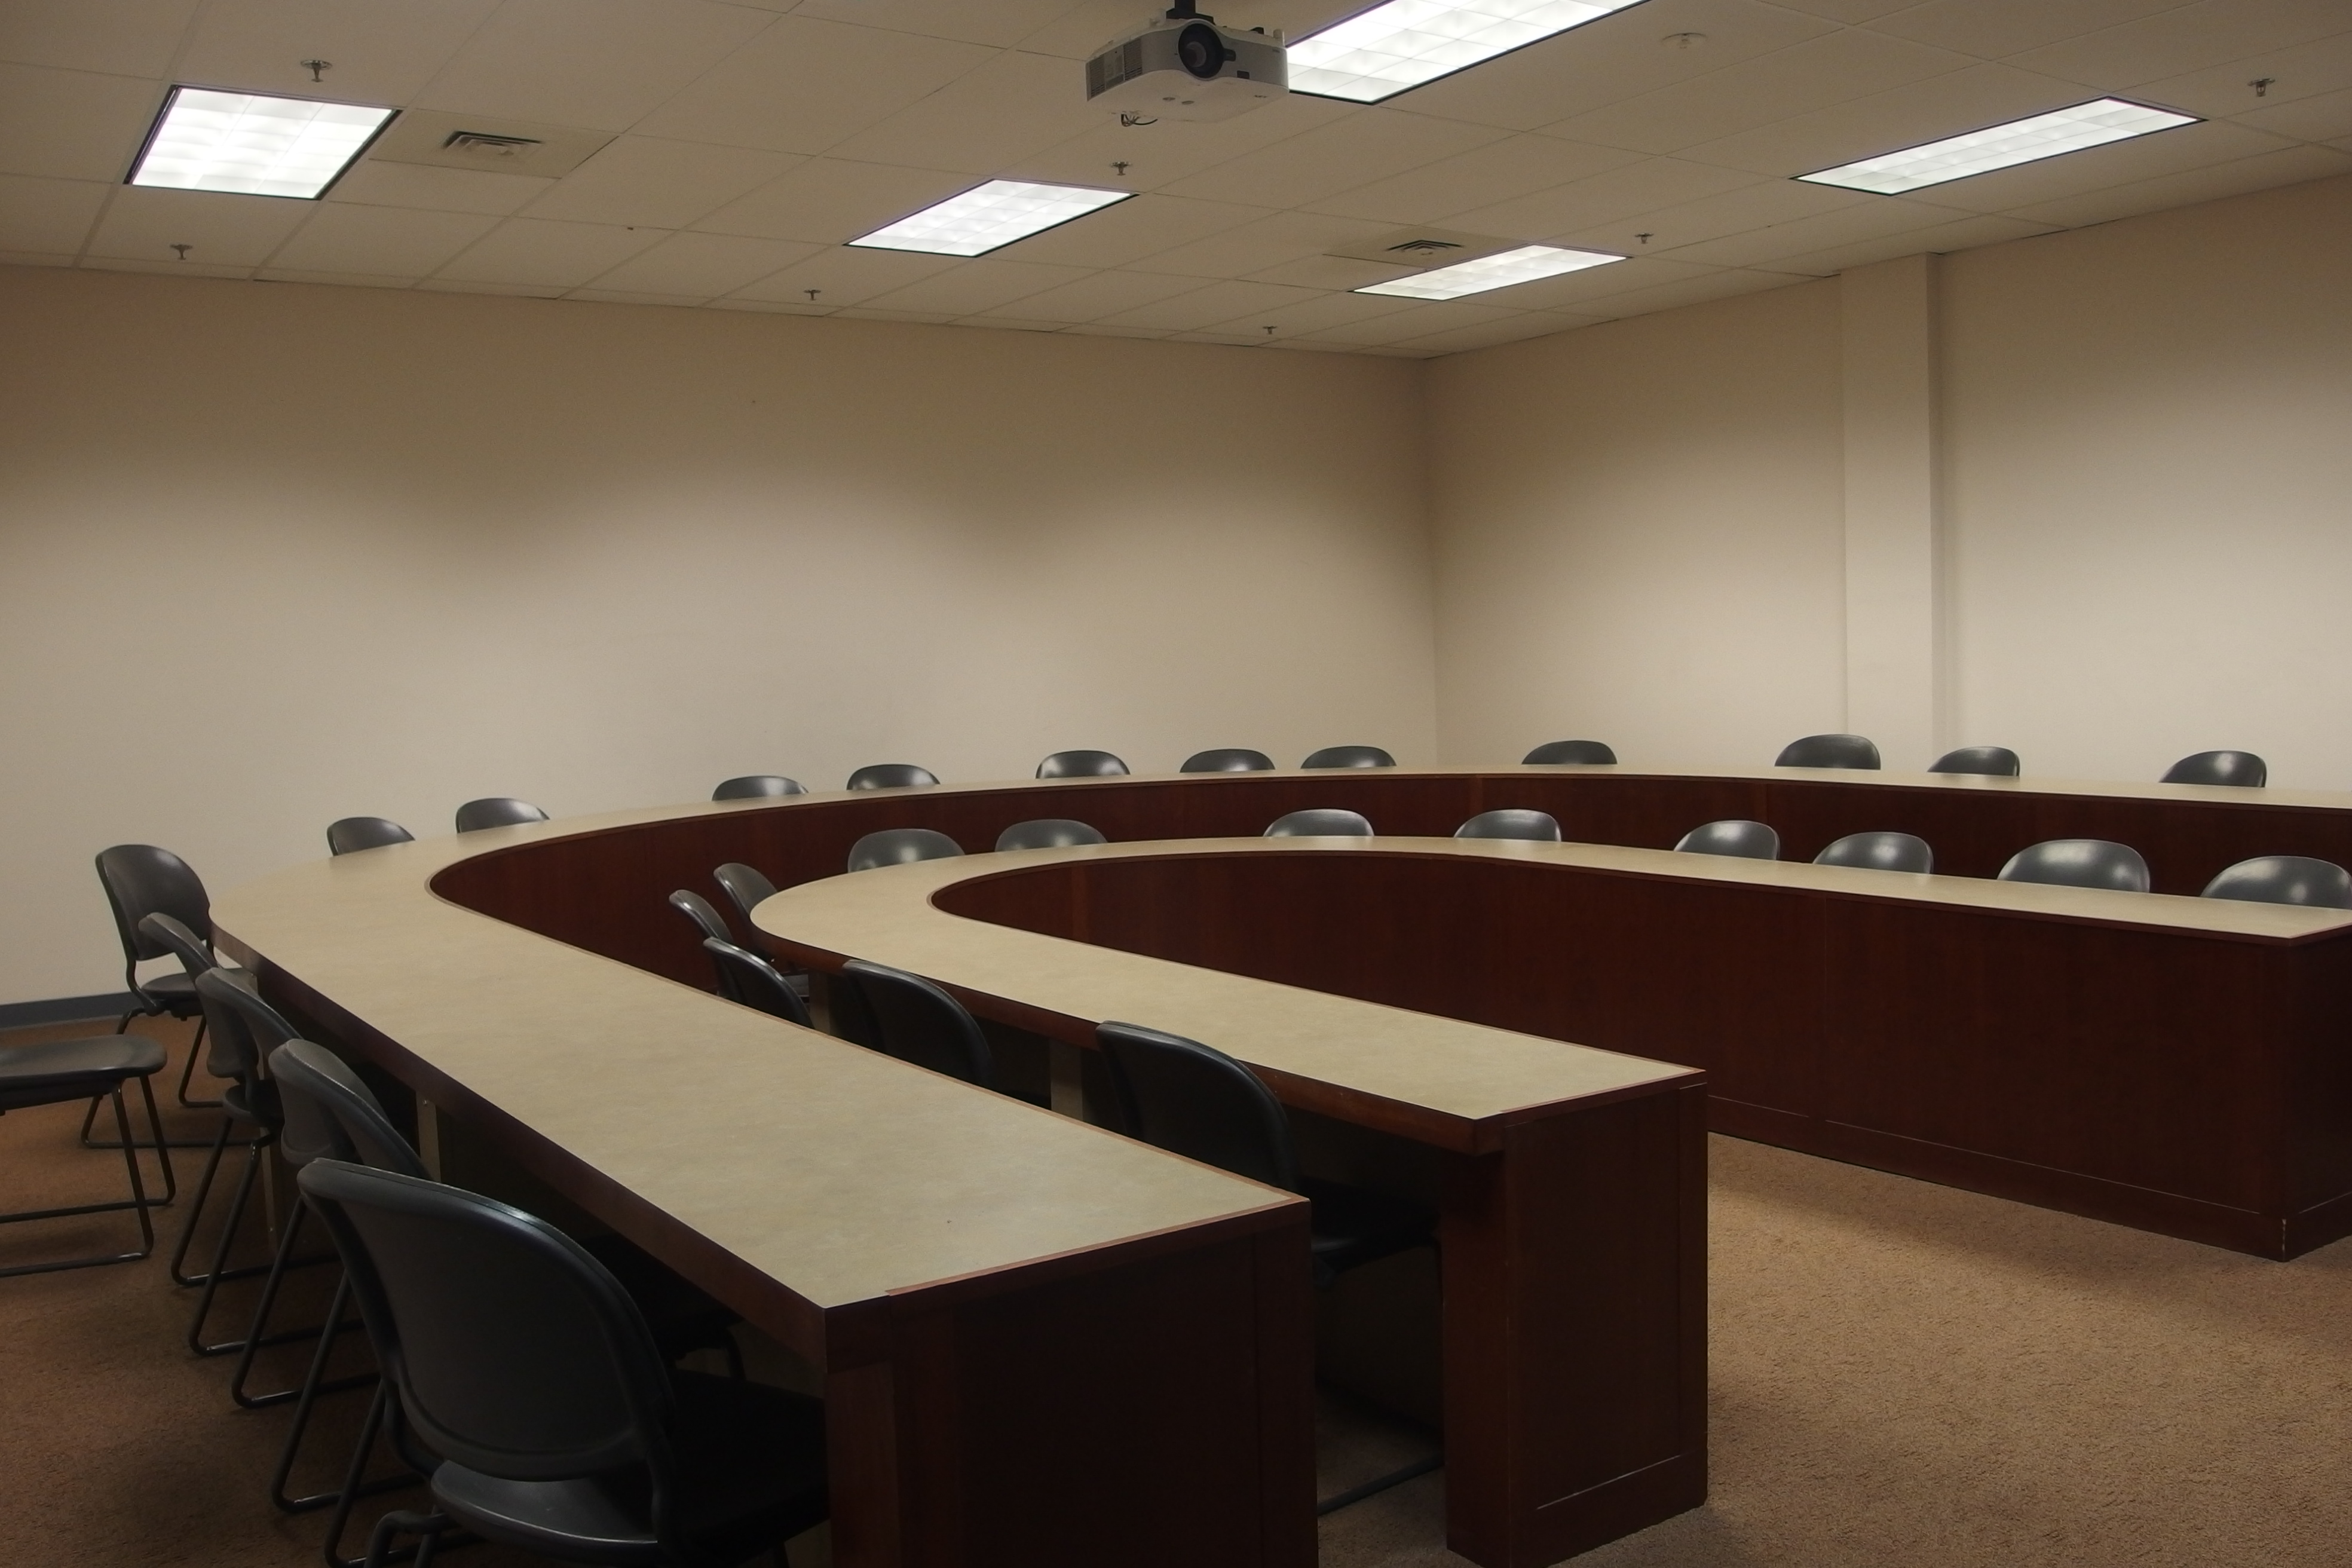 Photo of the classroom taken from the entrance of the space showing the U shape table configuration